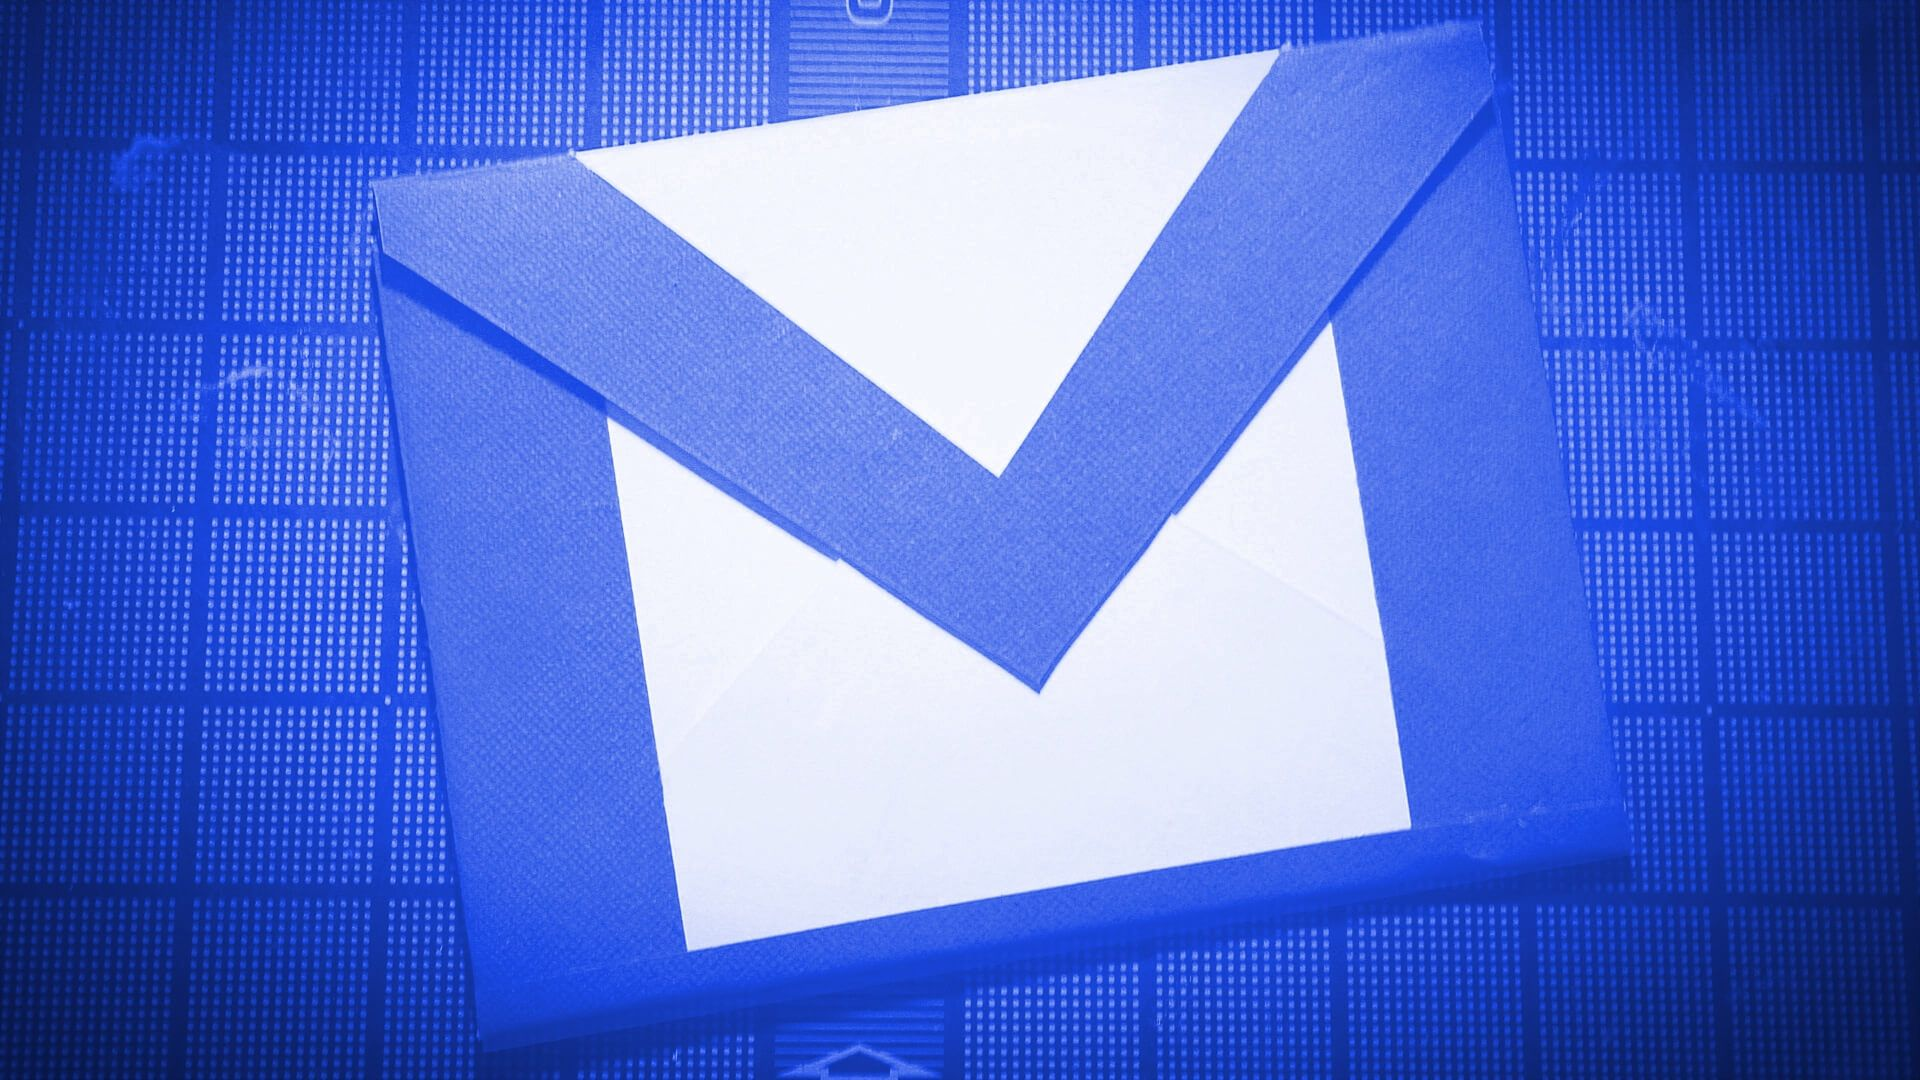 Gmail Wallpapers Top Free Gmail Backgrounds Wallpaperaccess